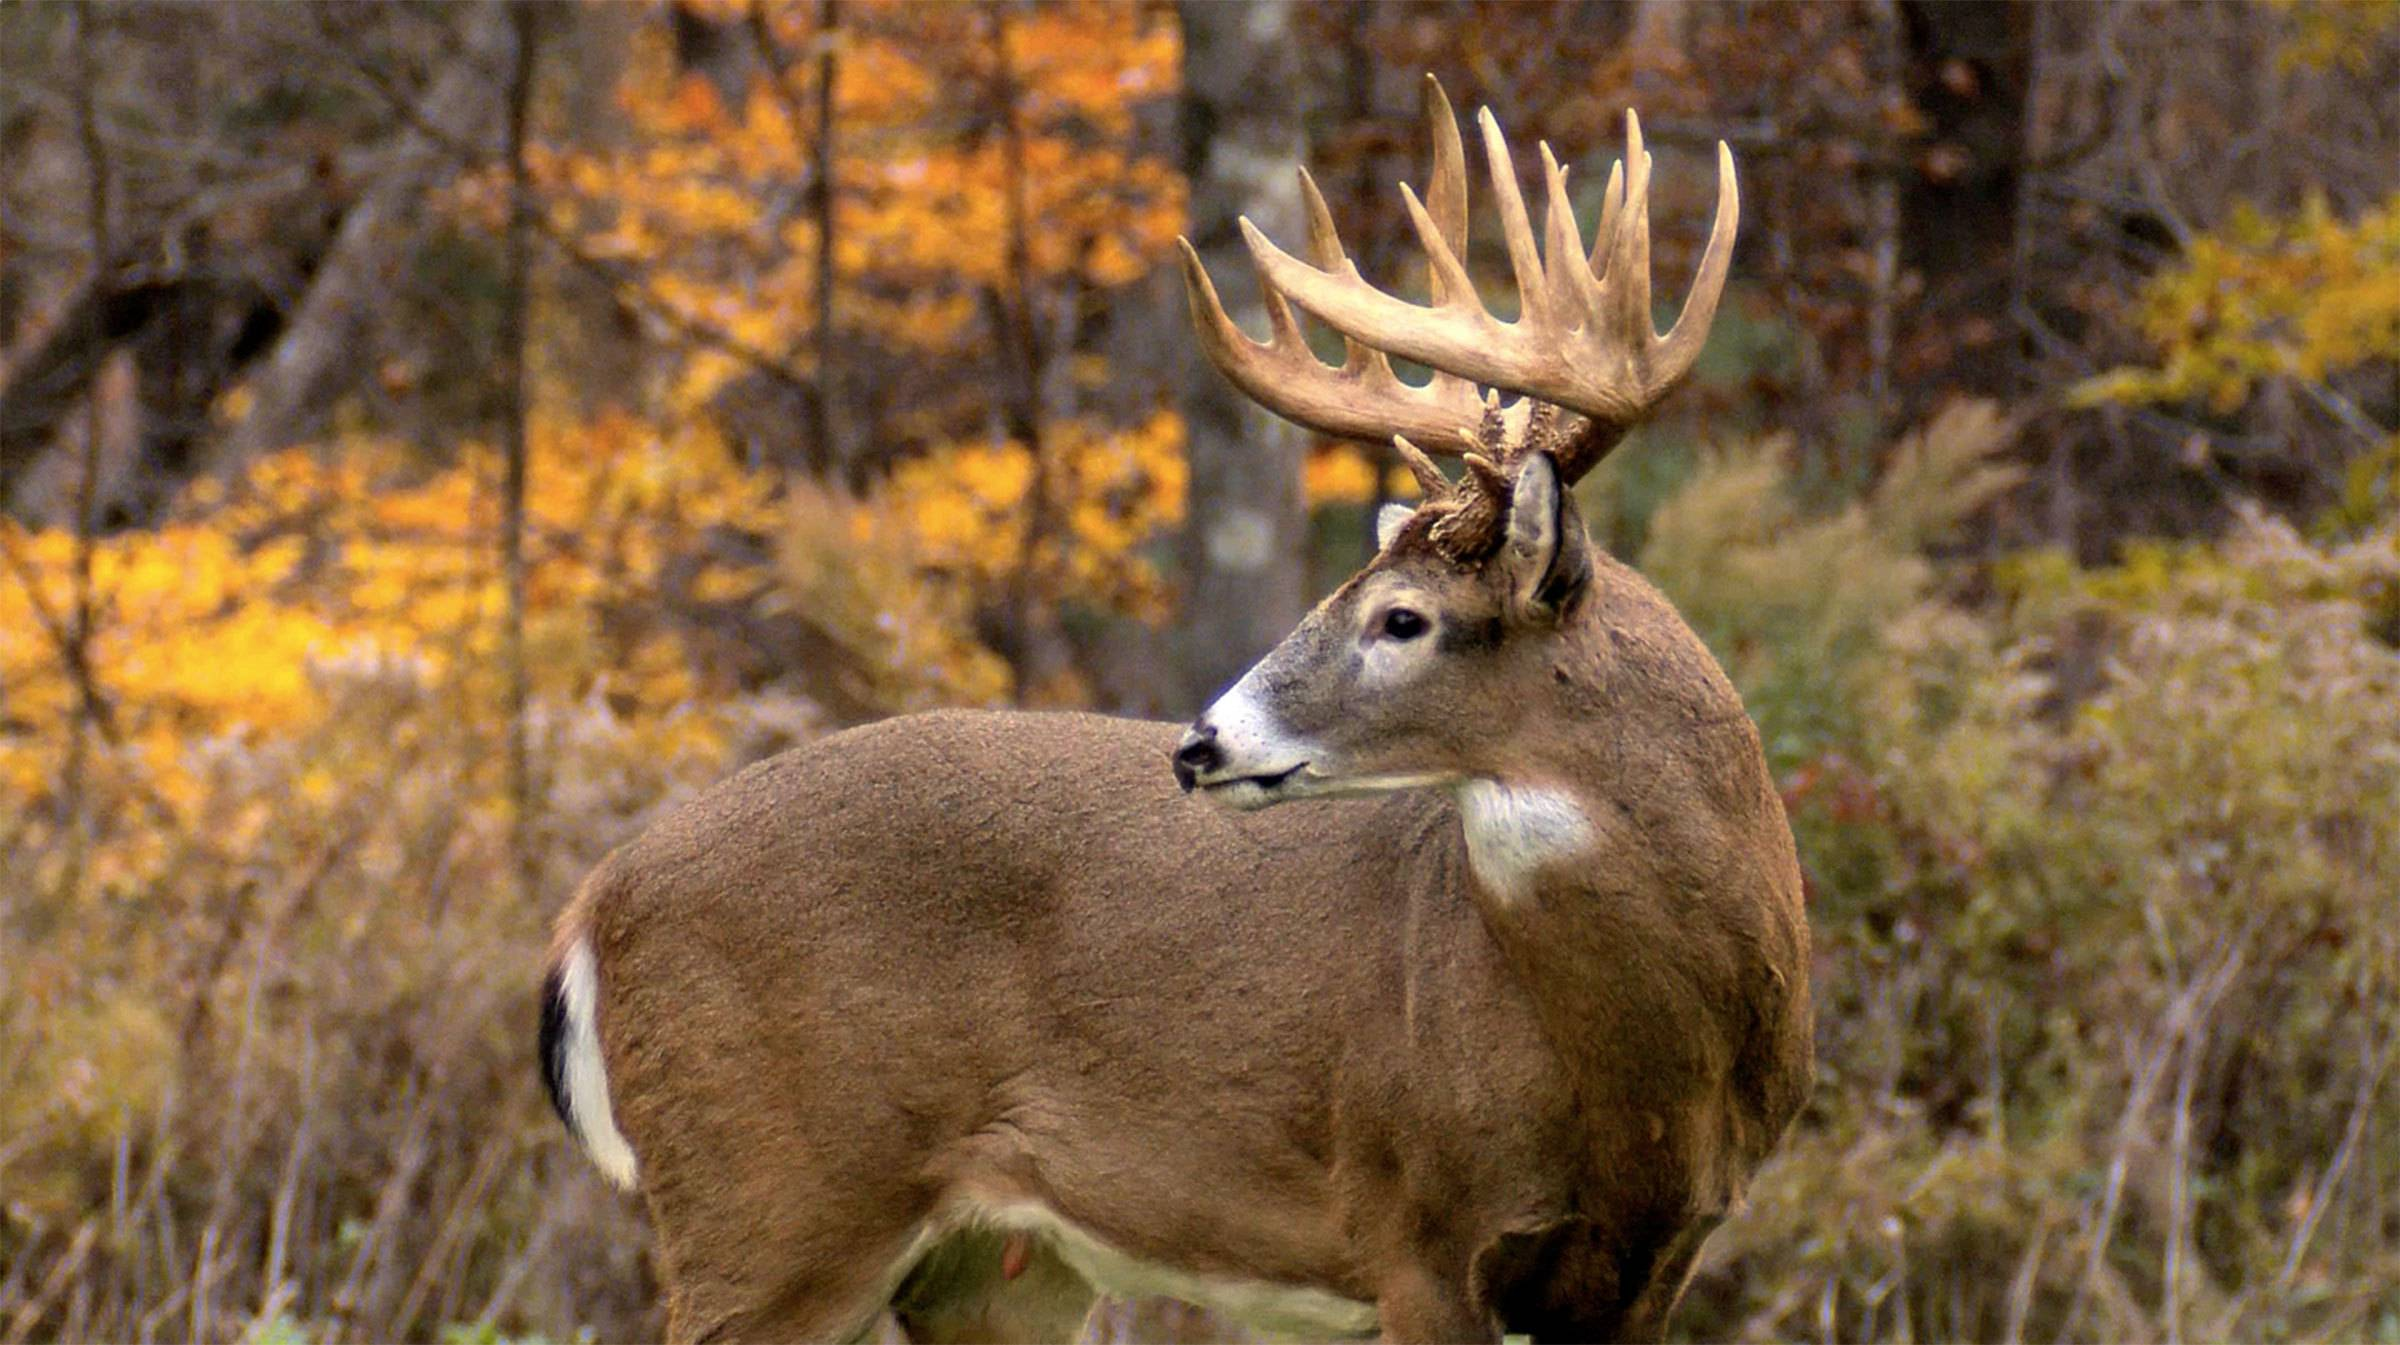 Contemporary Whitetail Deer Anatomy Photo - Anatomy and Physiology ...